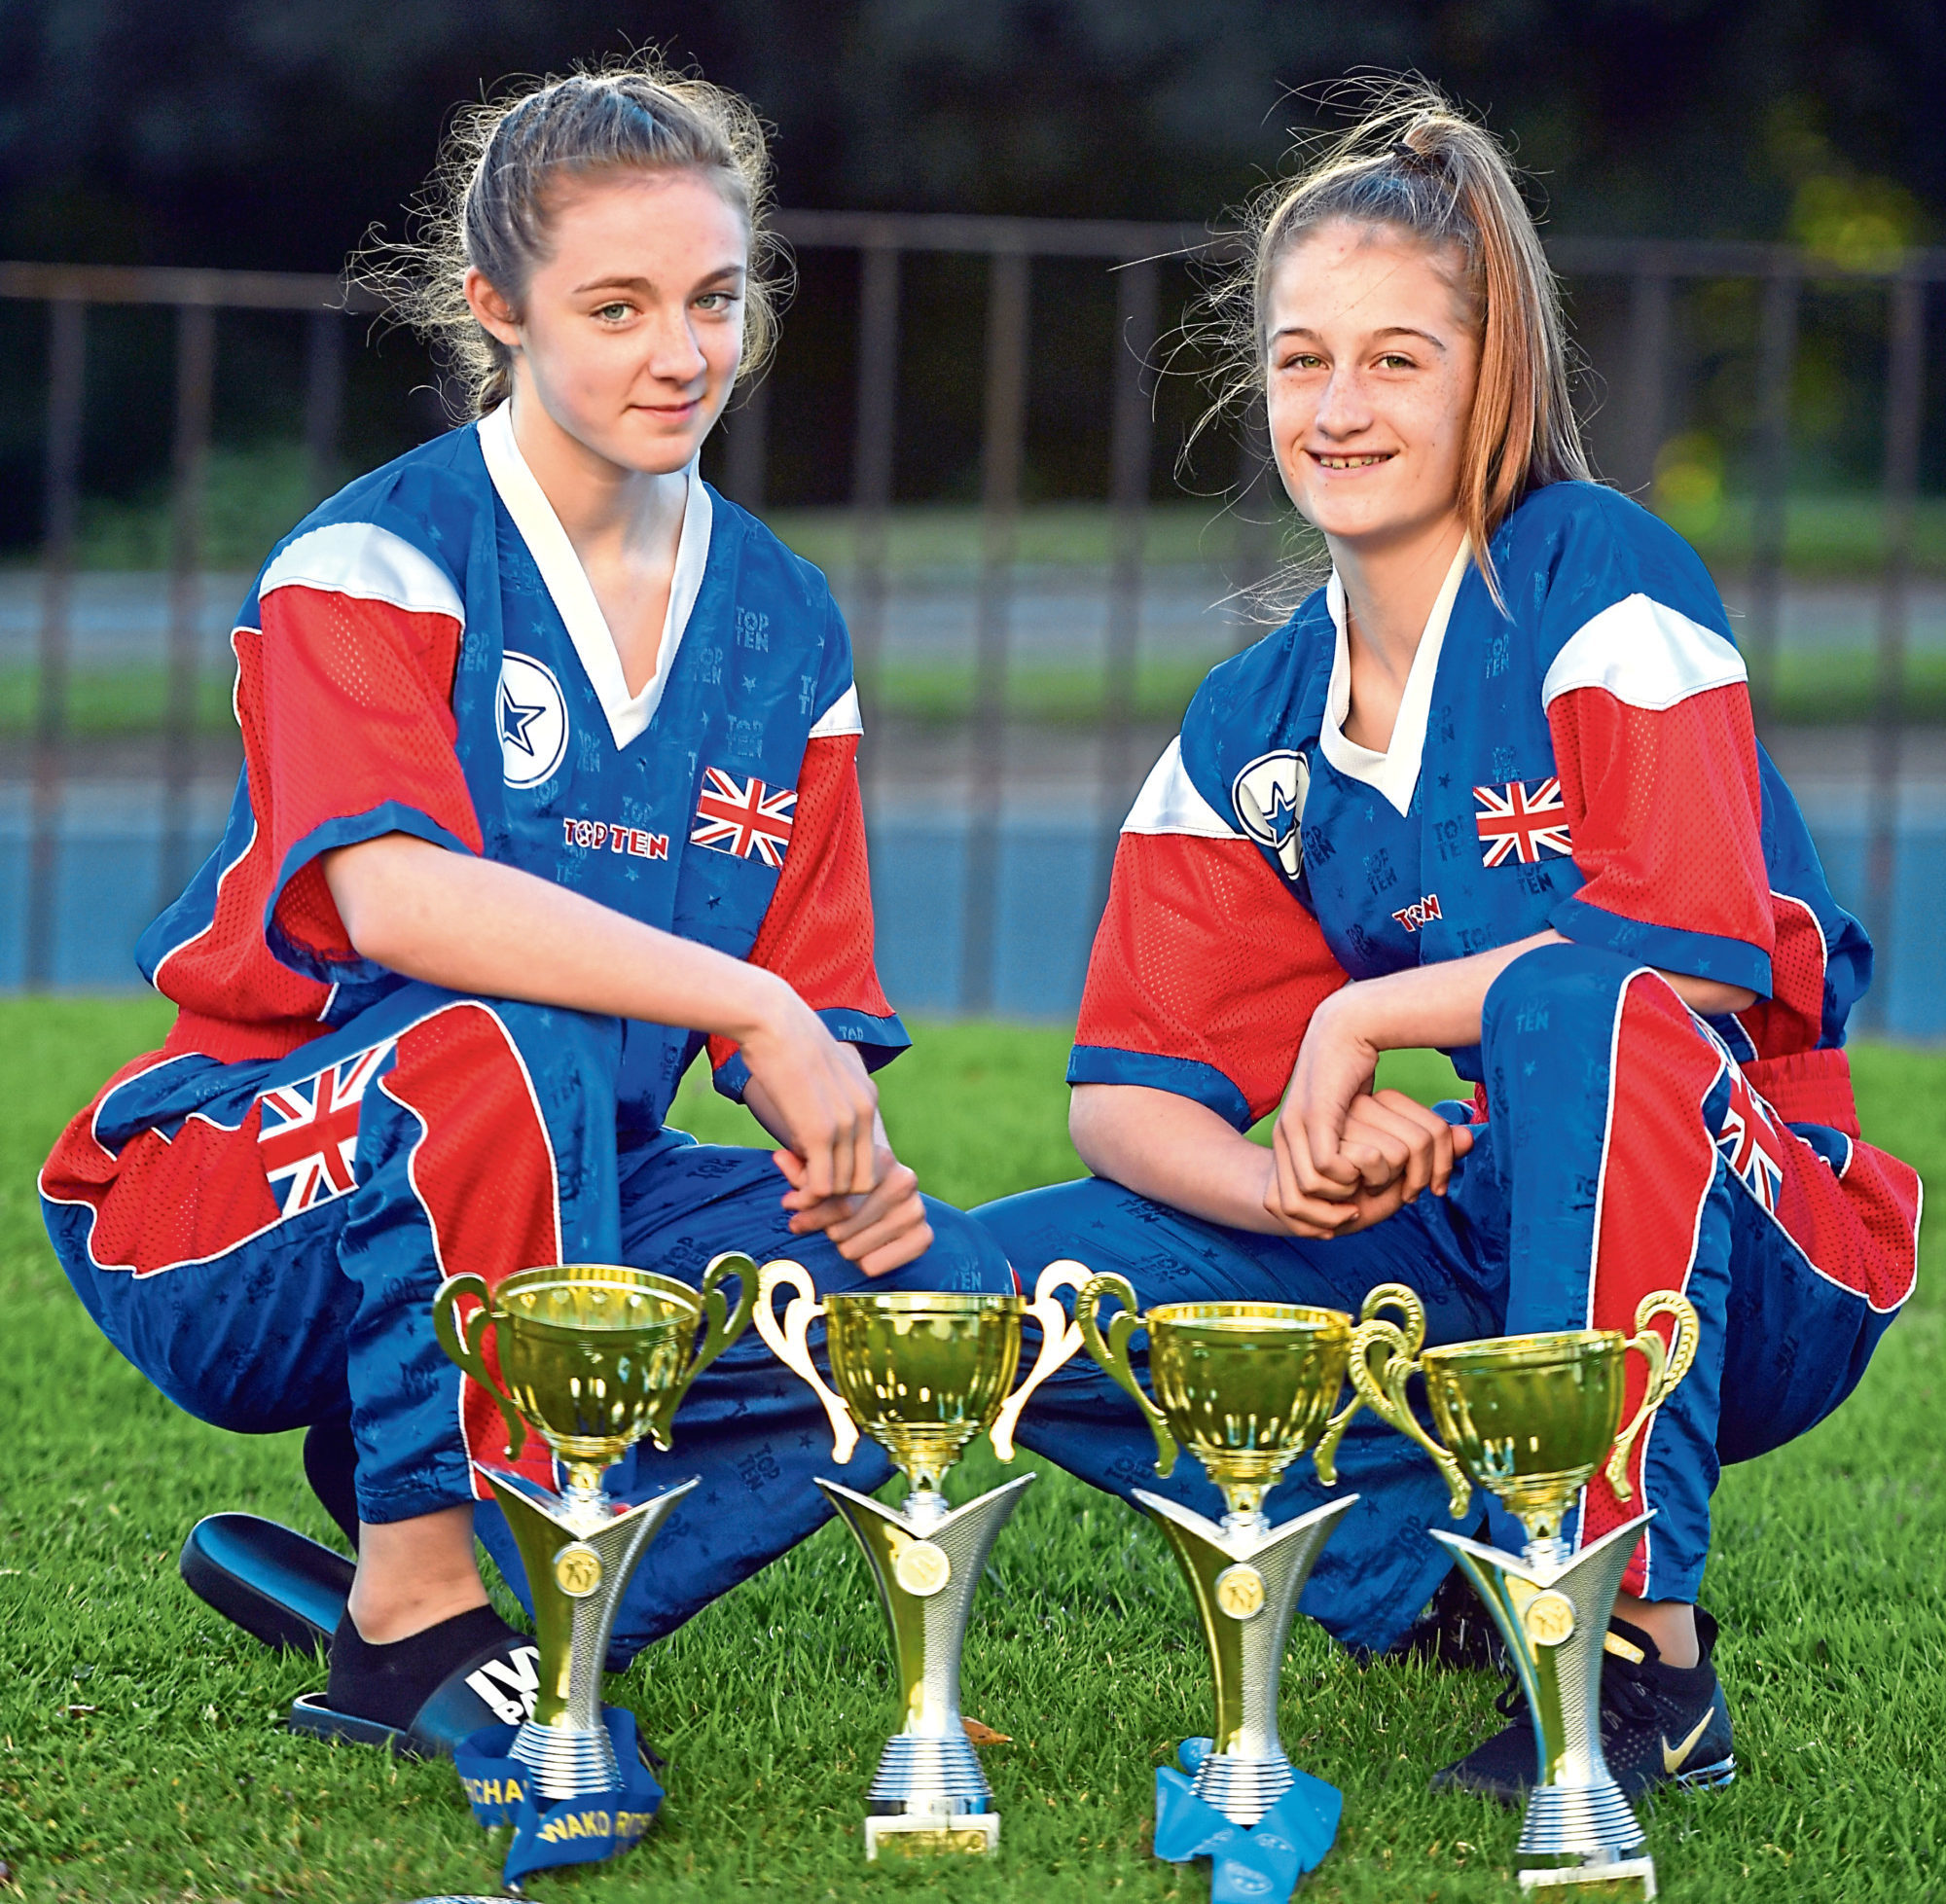 Going places: Abi Allan, left, and Kaitlyn Hendry have had a good 2018